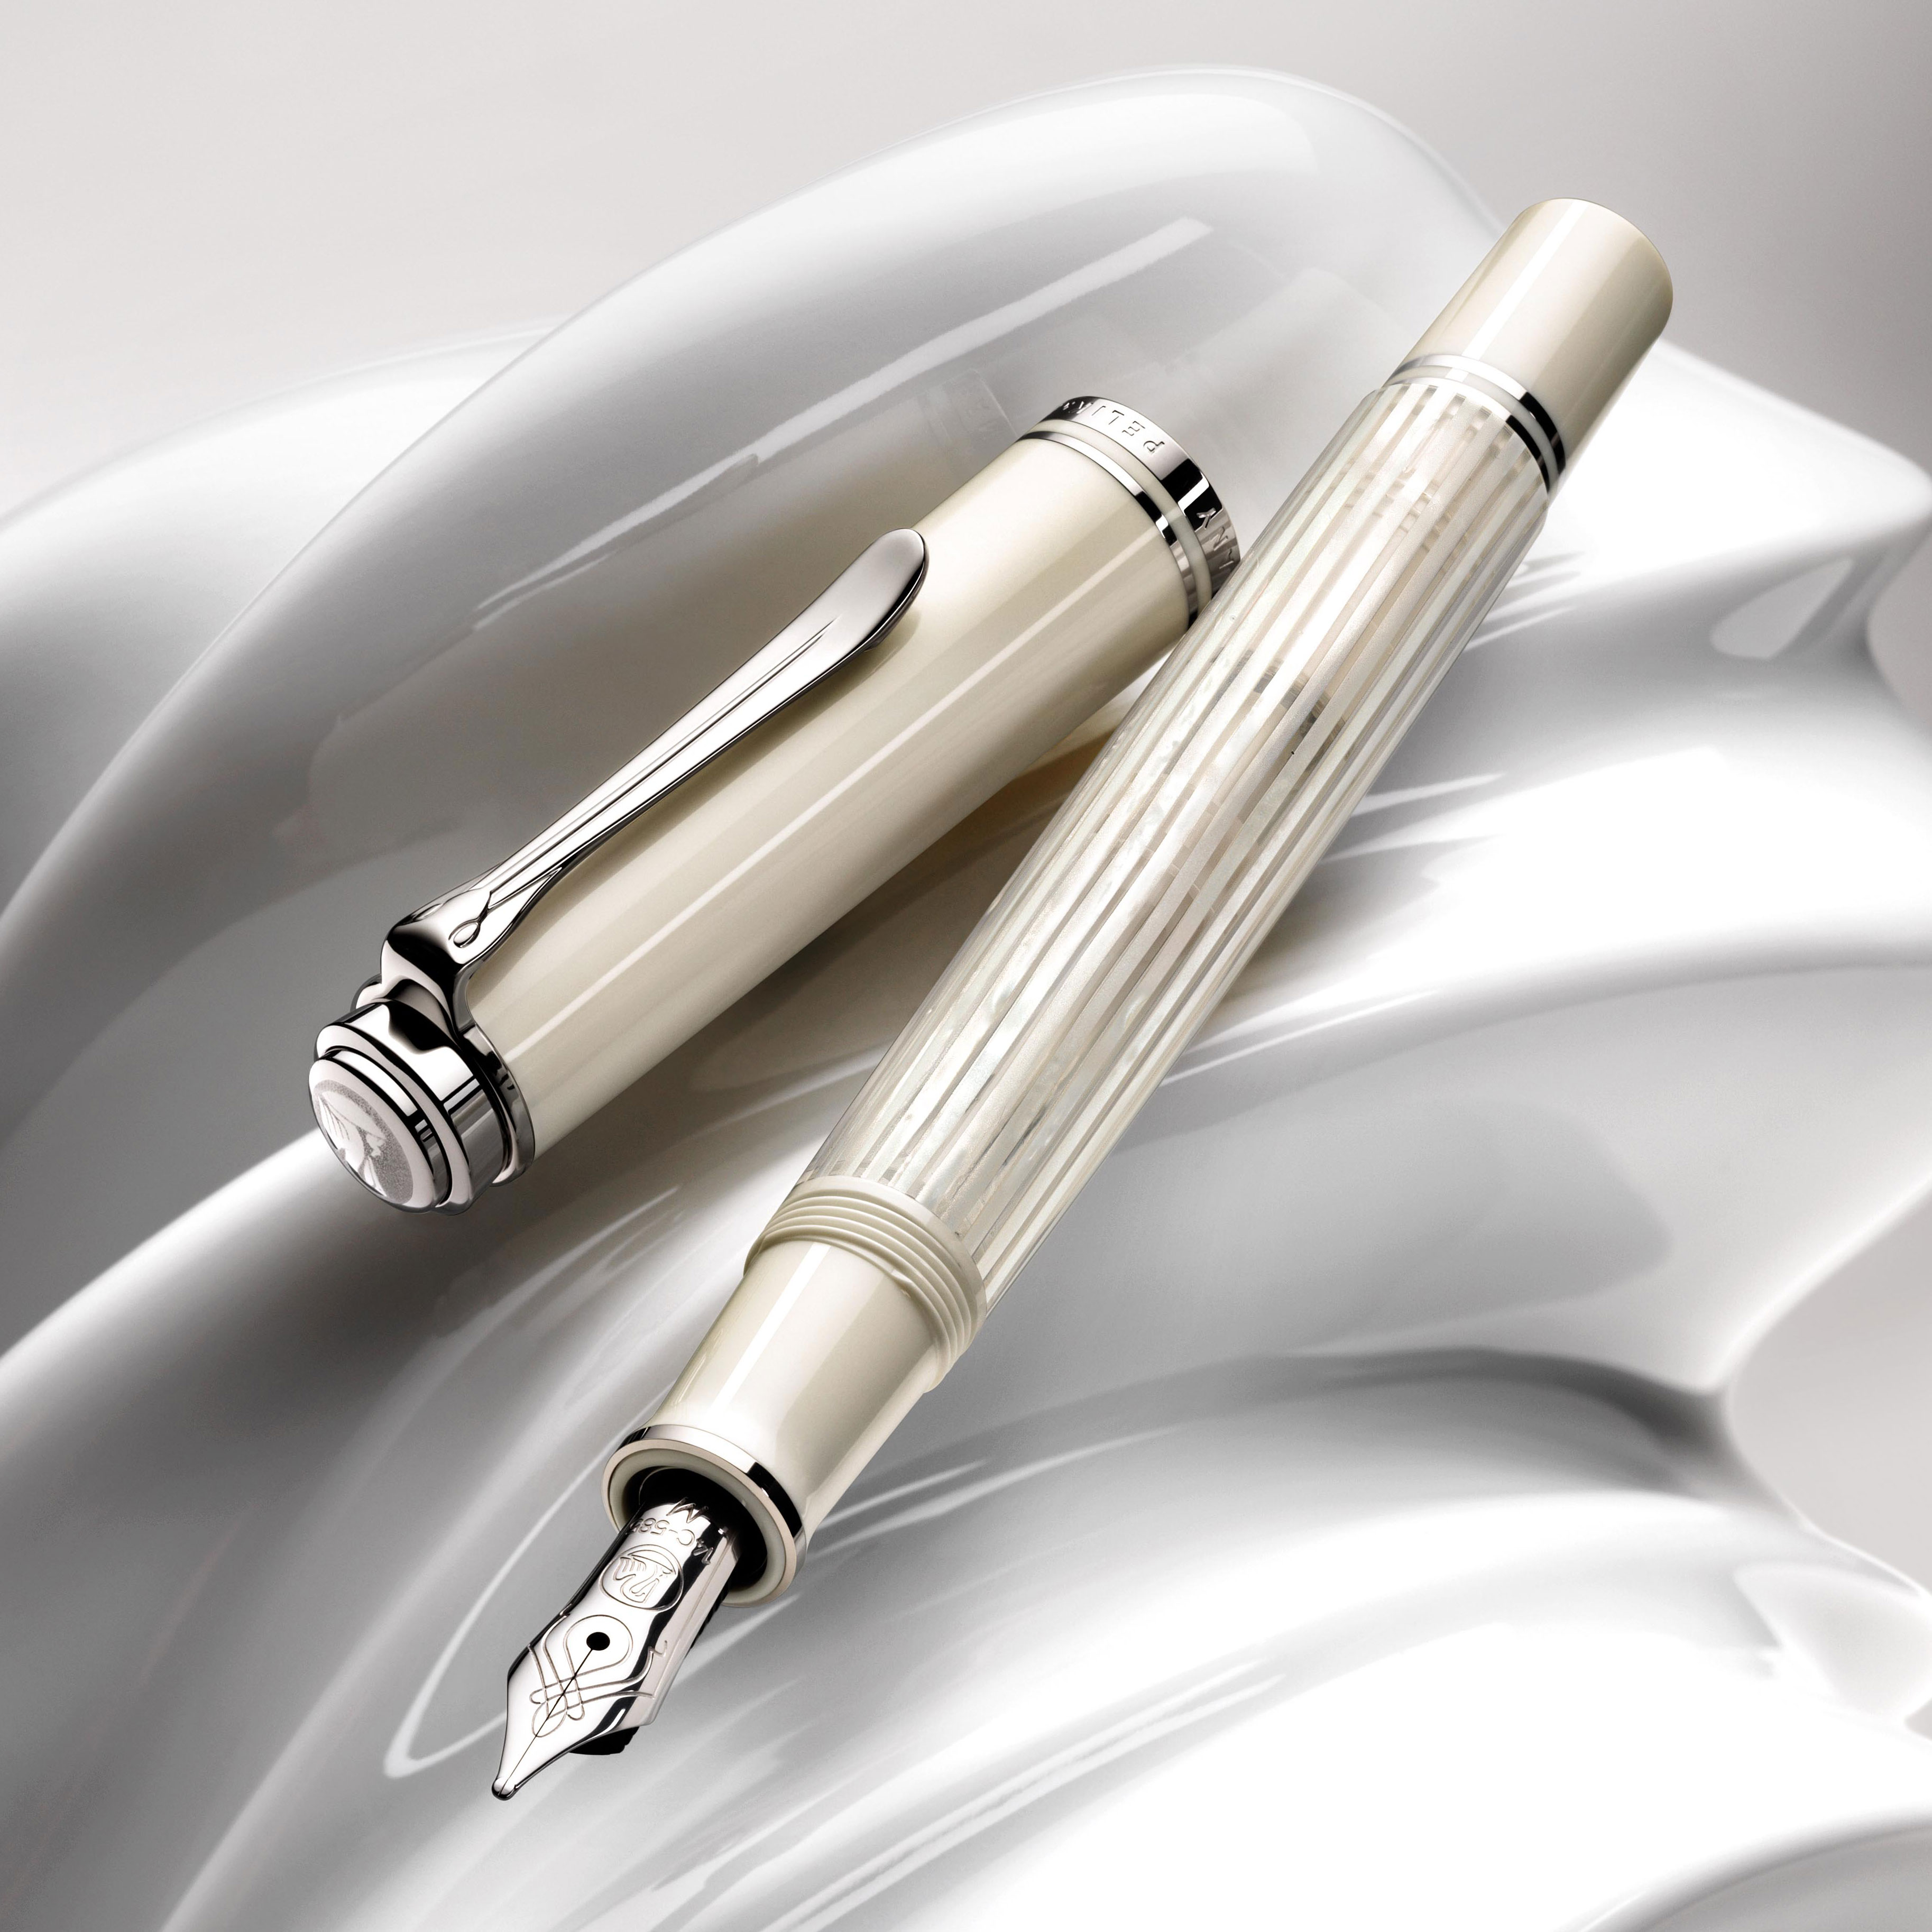 Pelikan Special Edition 200 Smoky Quartz